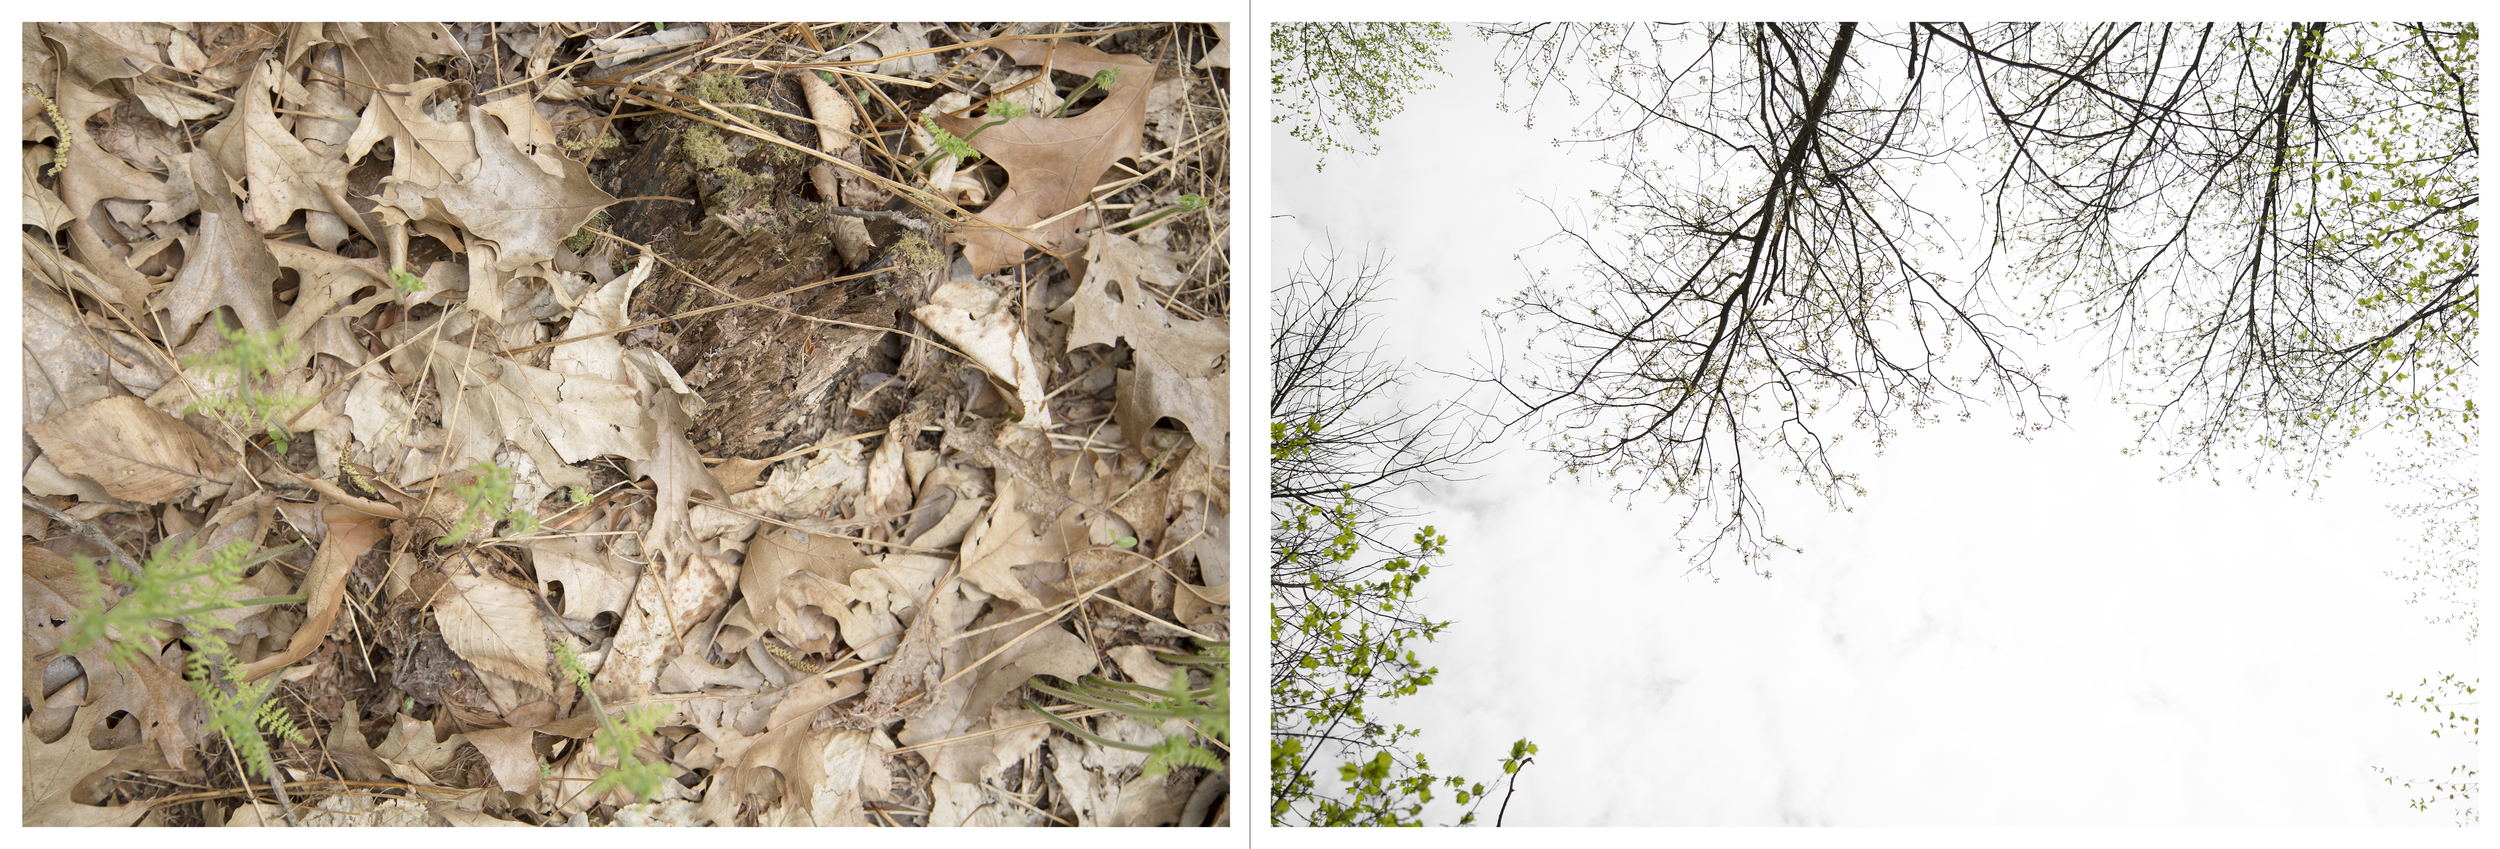 """And so on and so forth in much the same vein: Logging Road, Inkjet Photograph, 24"""" X 72,"""" 2015."""